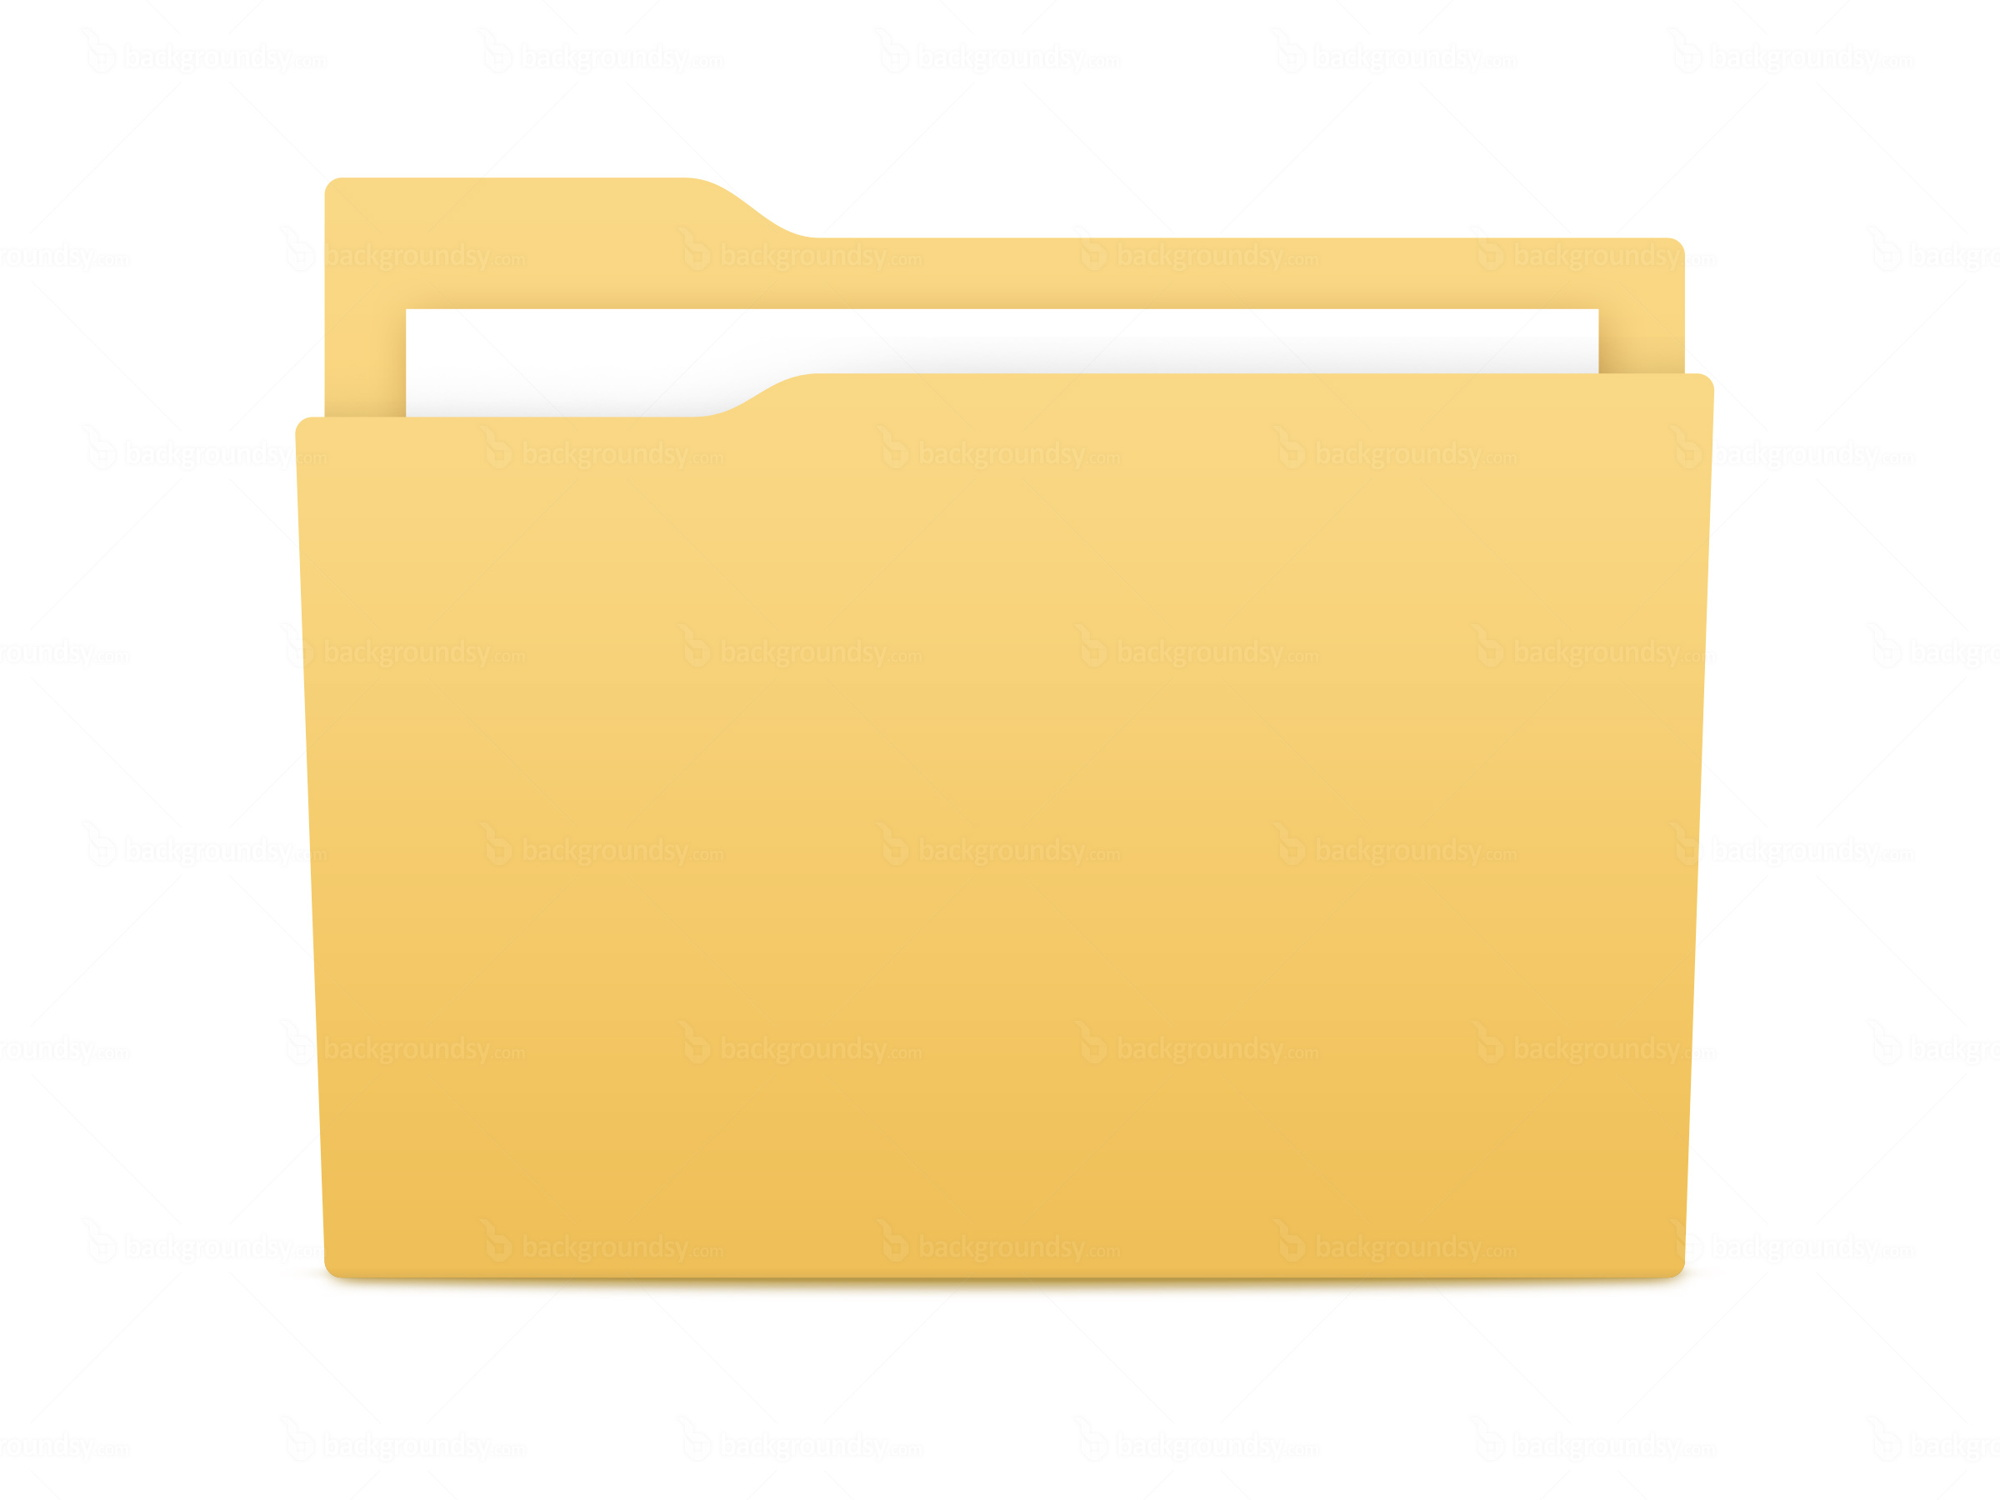 Large Home Office Yellow Folder Icon Psd Backgroundsy Com